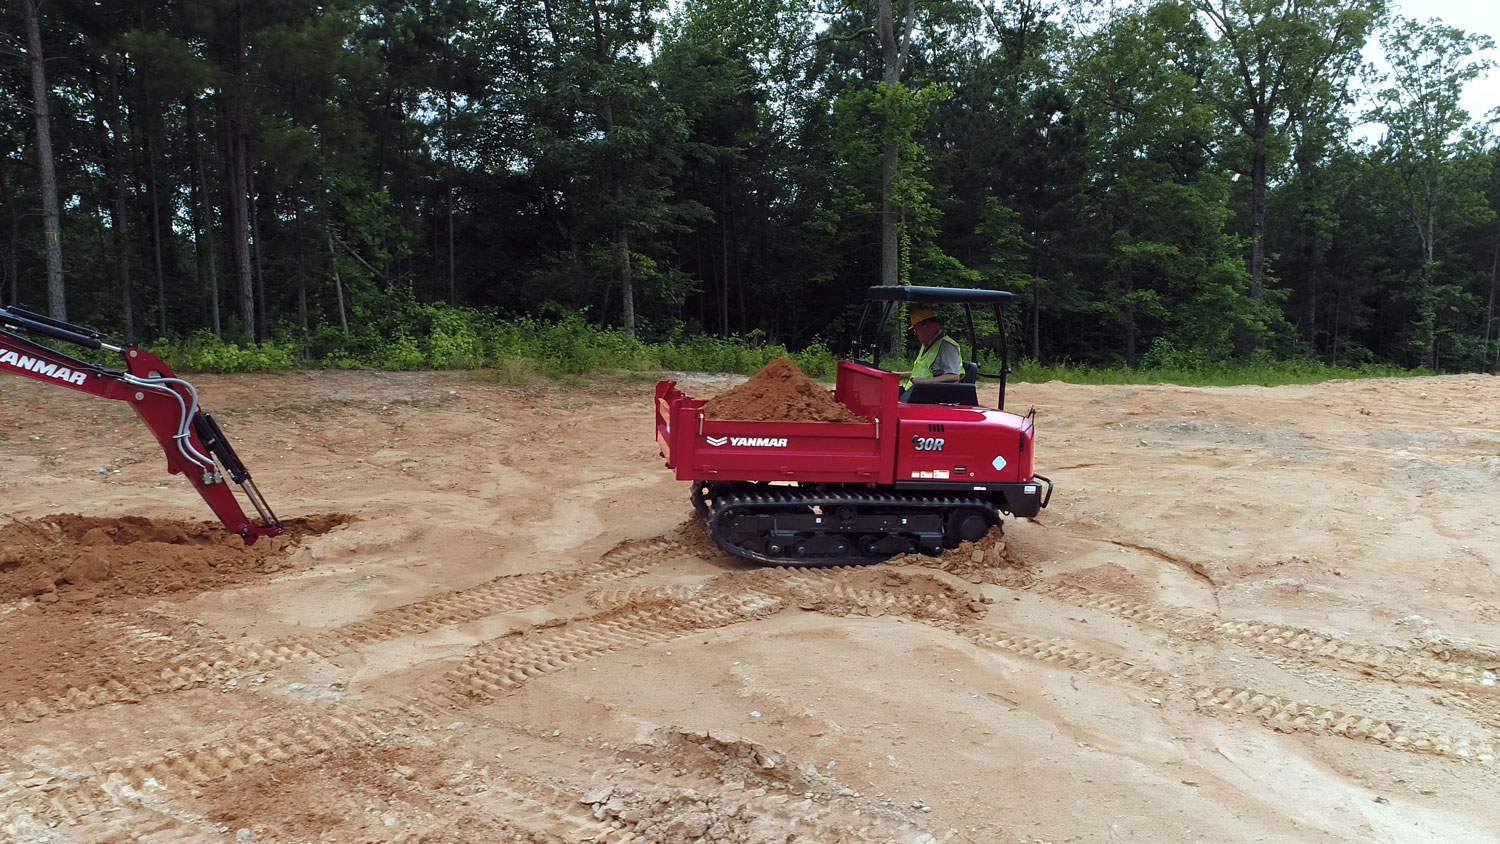 Yanmar Tracked Carrier 30R